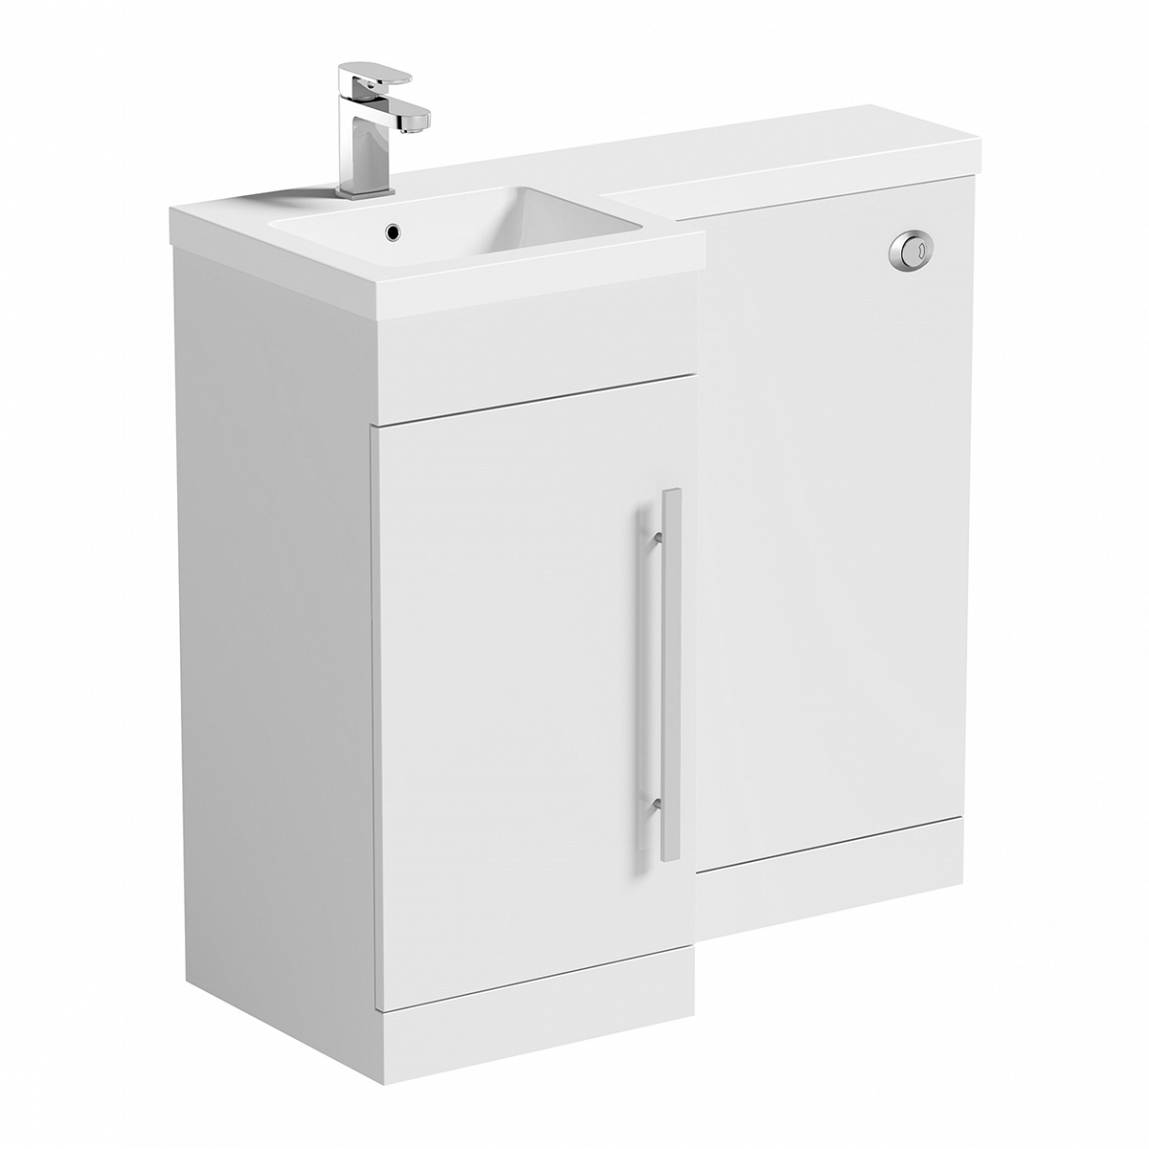 Image of MySpace White Combination Unit LH including Concealed Cistern